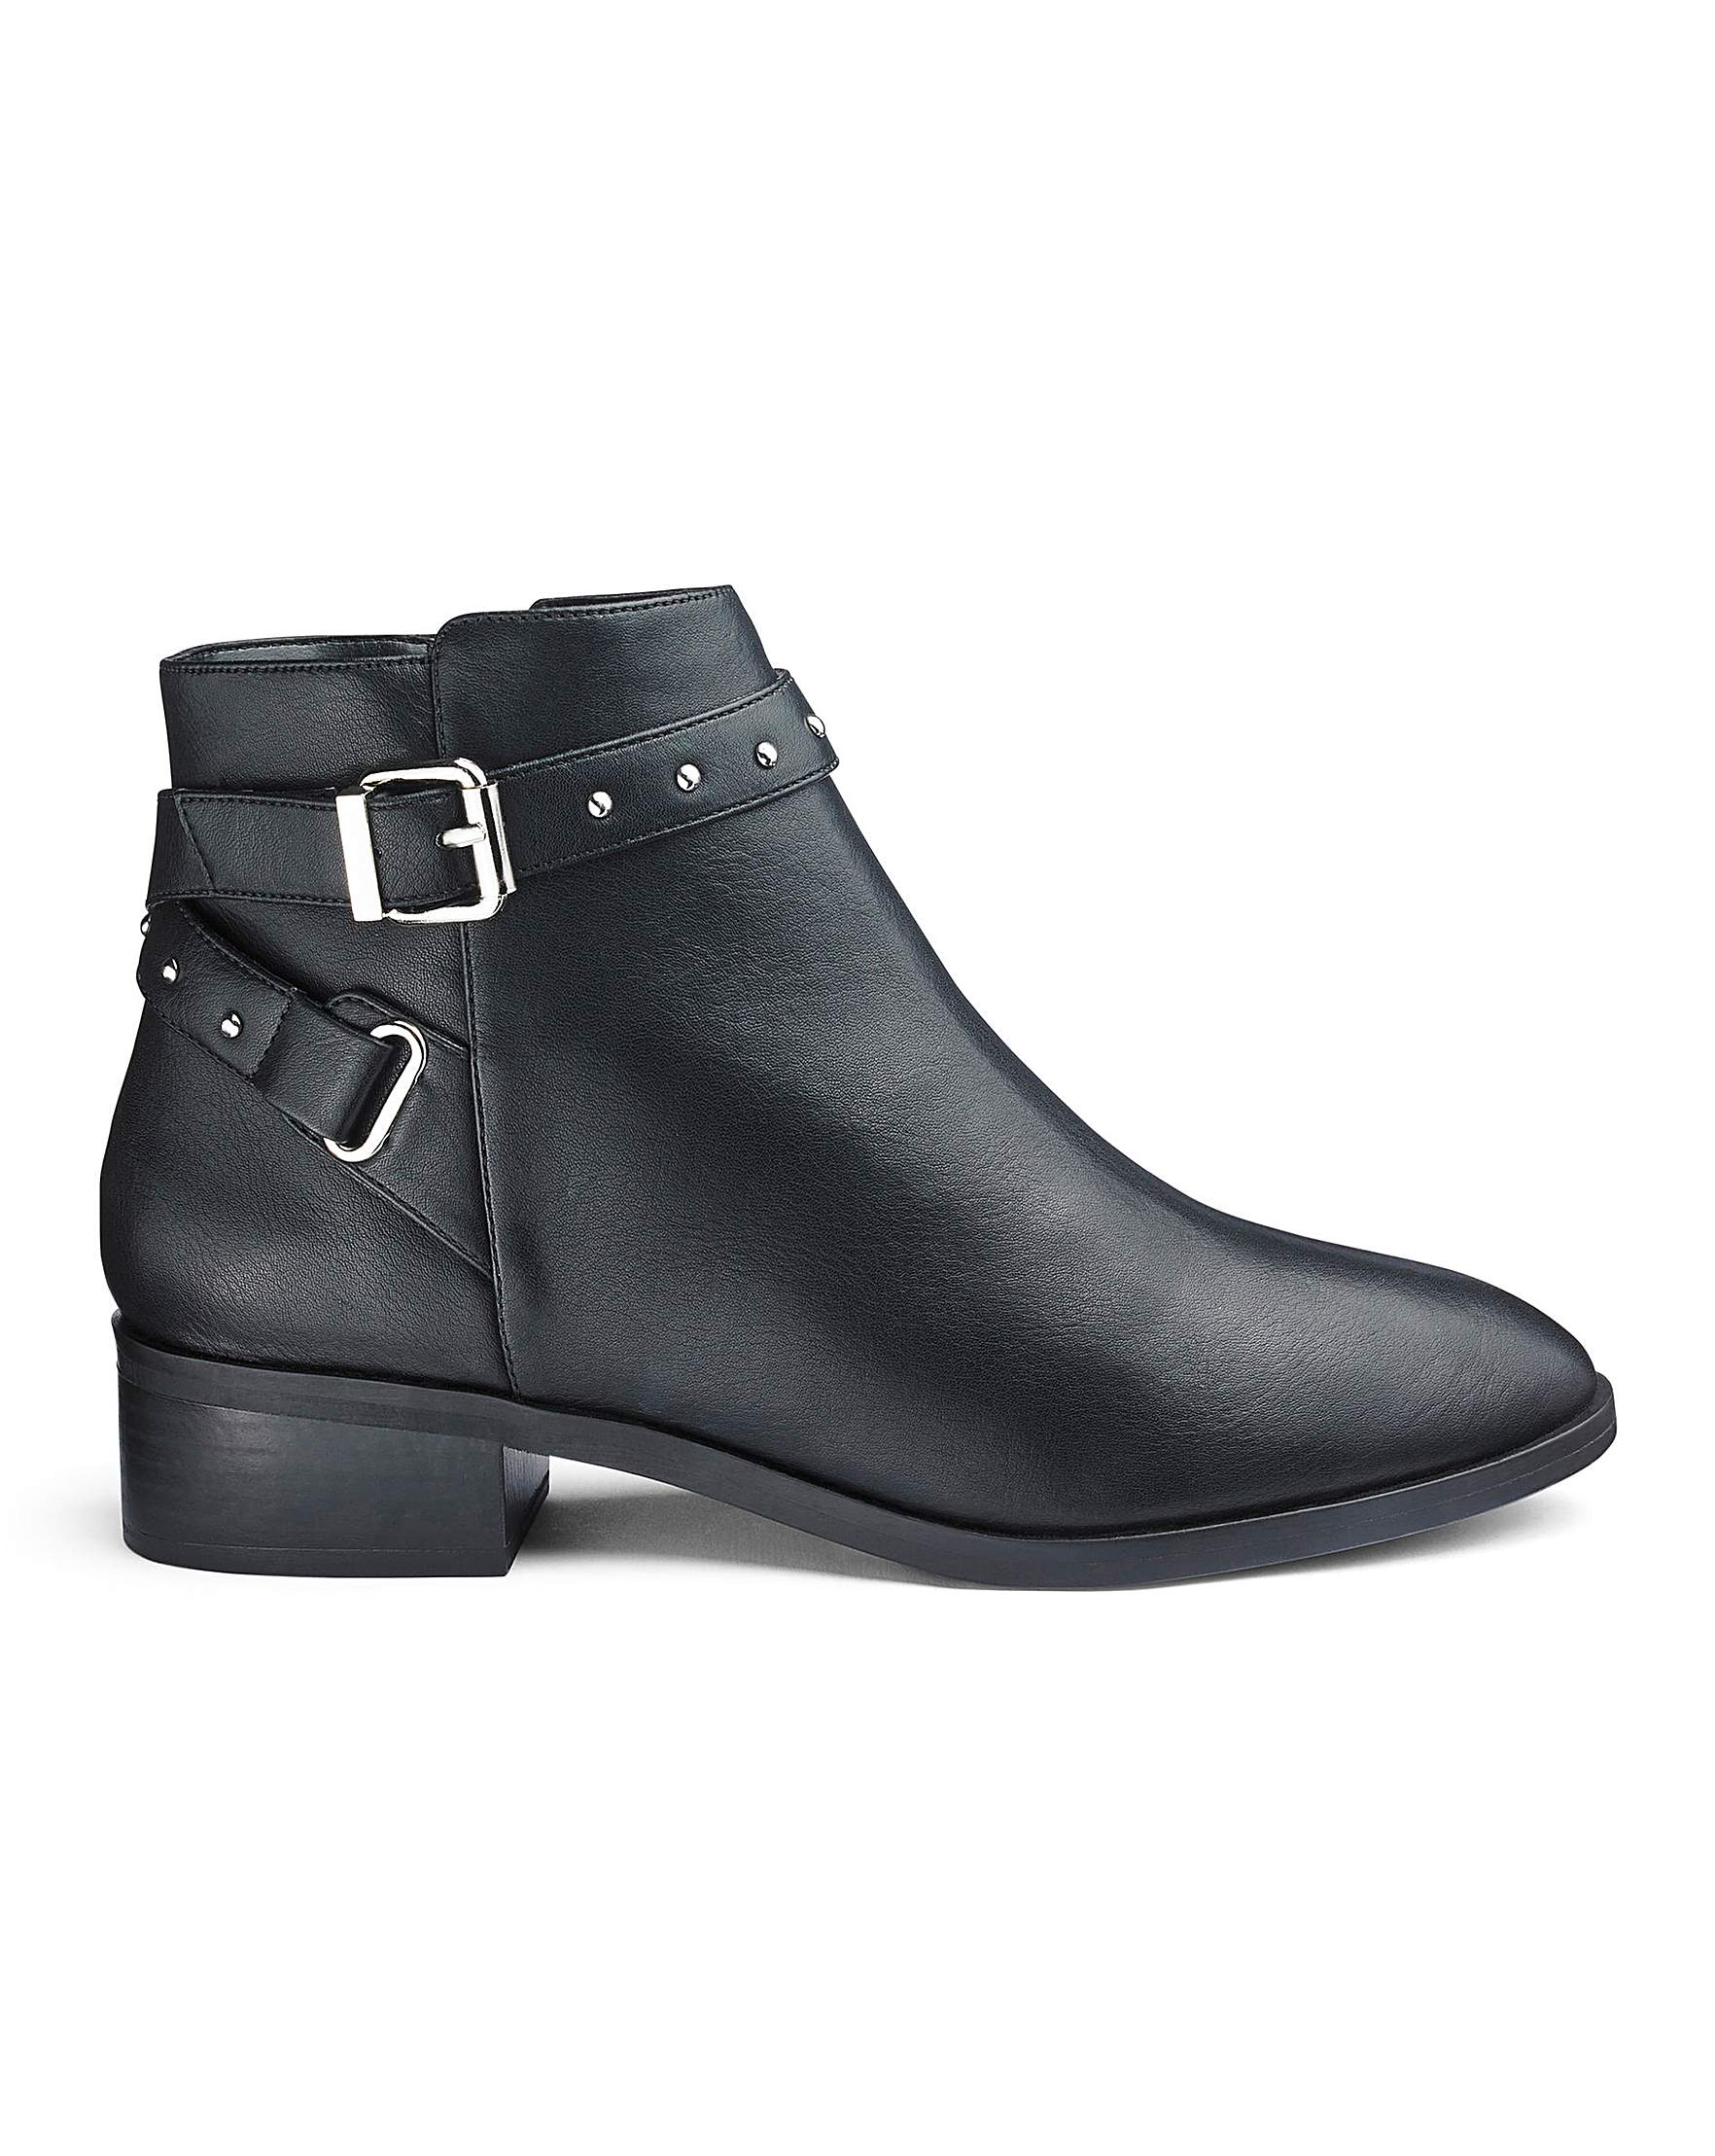 10f28dd0739 Eira Buckle Detail Boots Wide E Fit